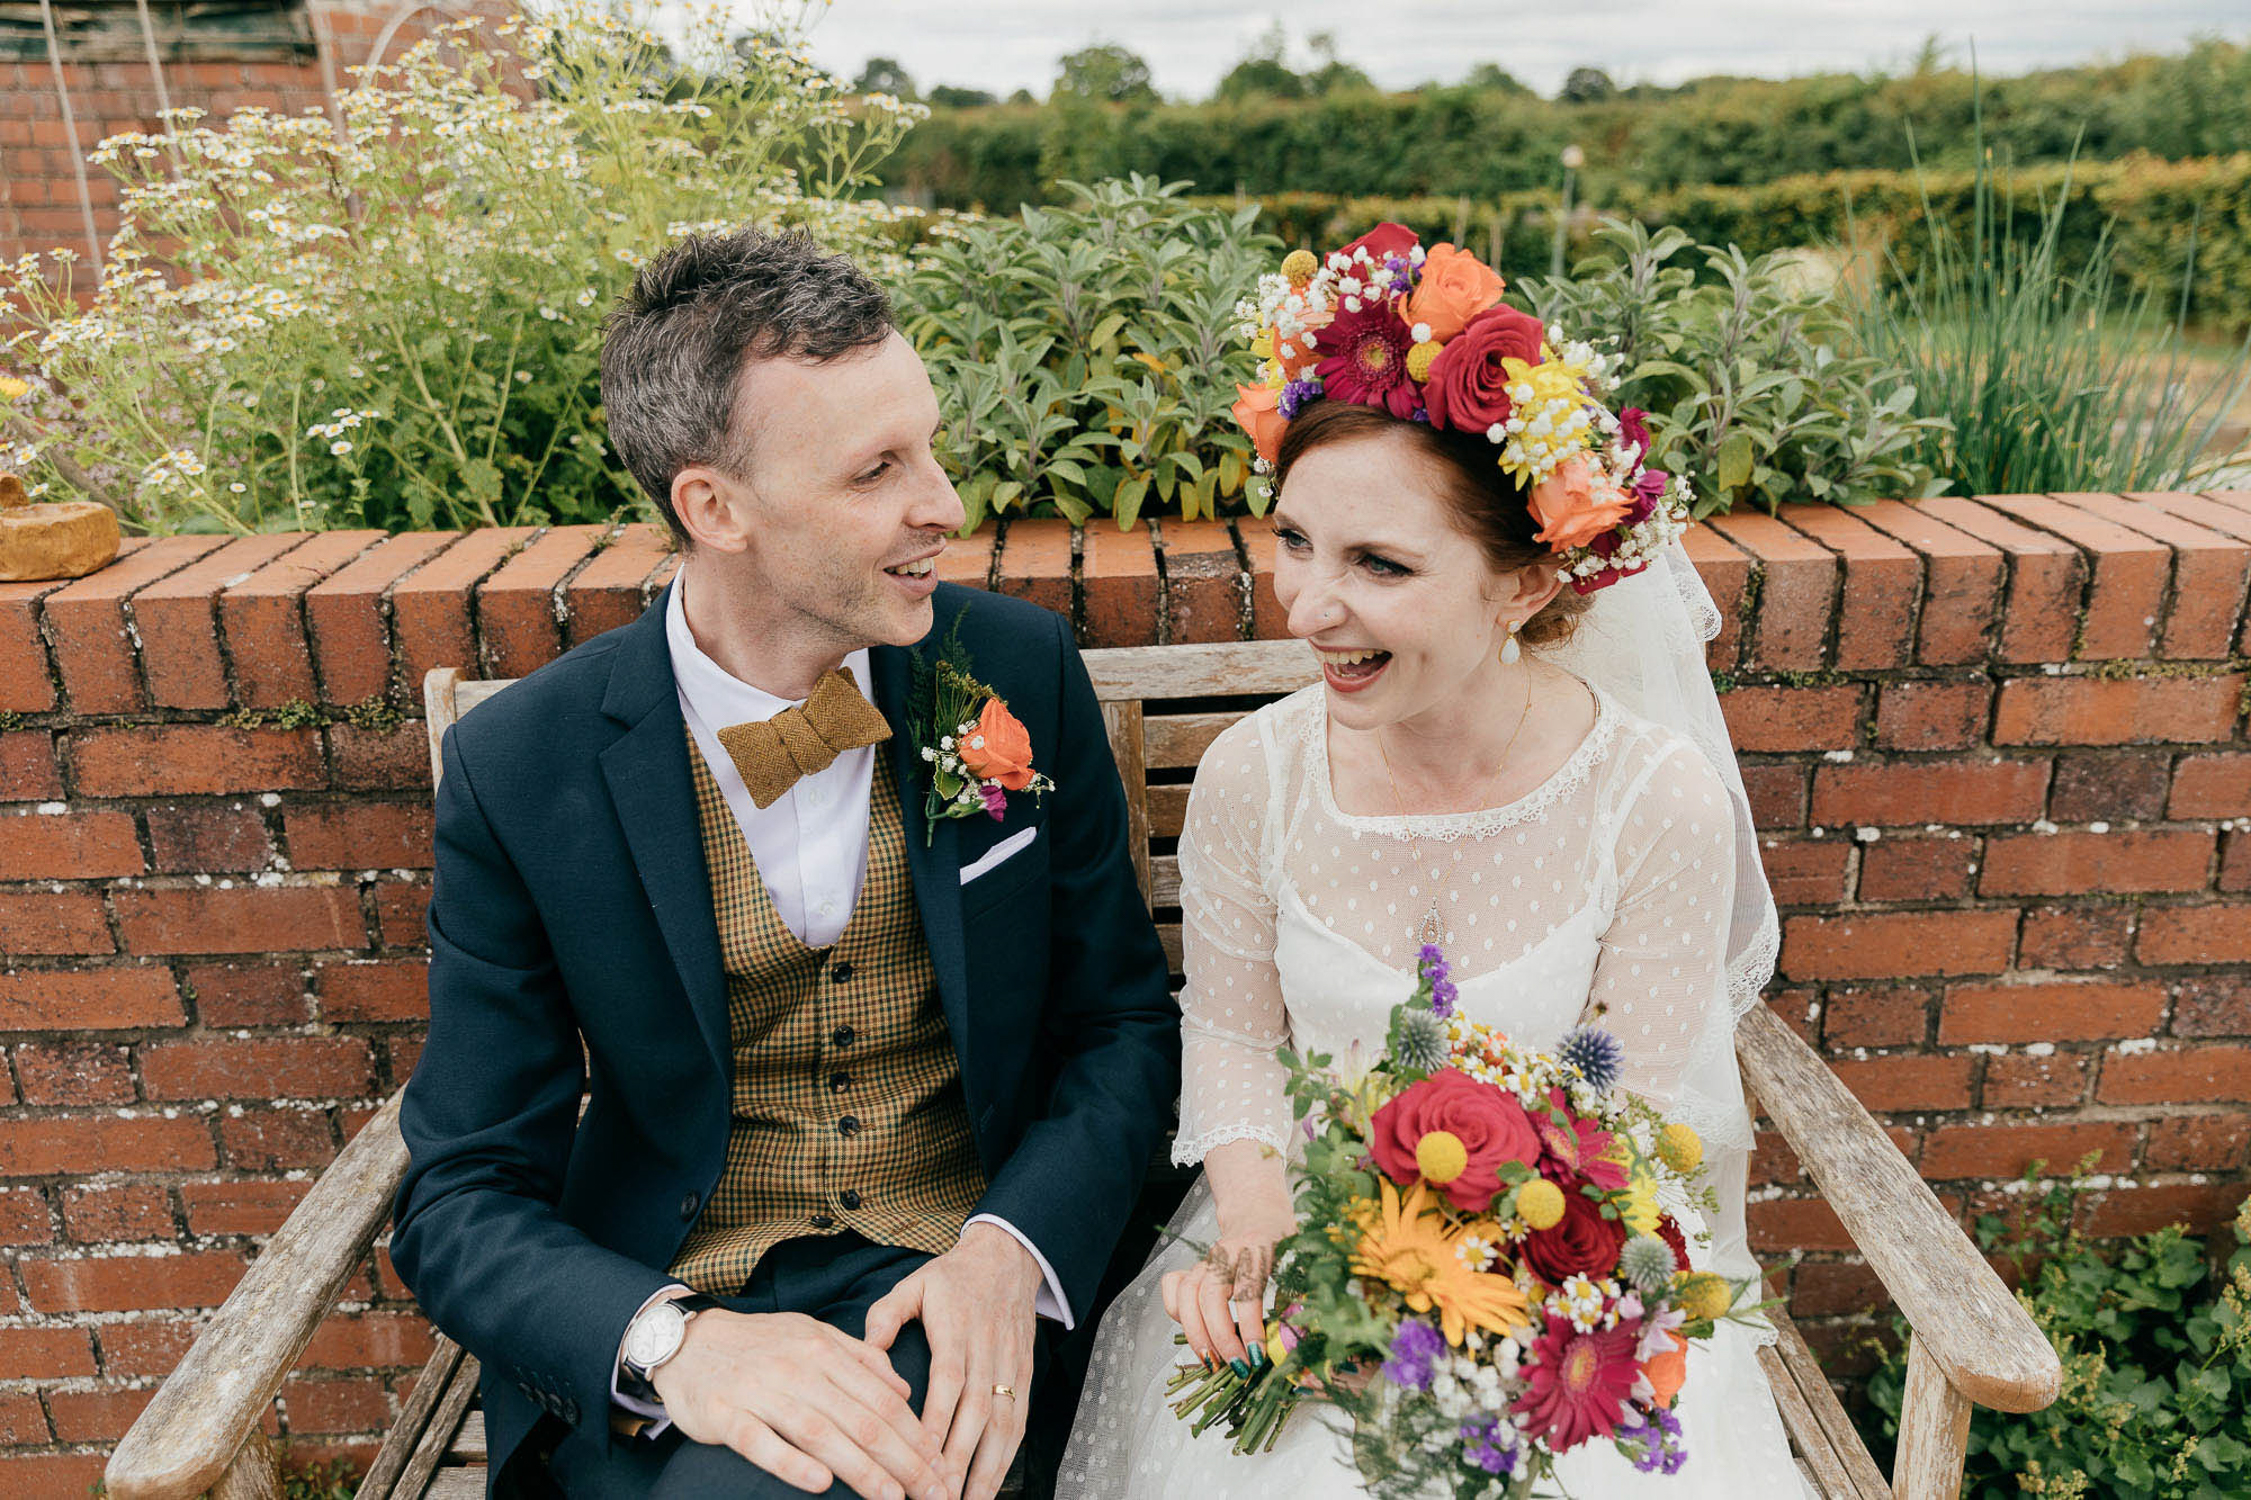 natural wedding photos of couple with vintage inspired style at bromwhich park farm